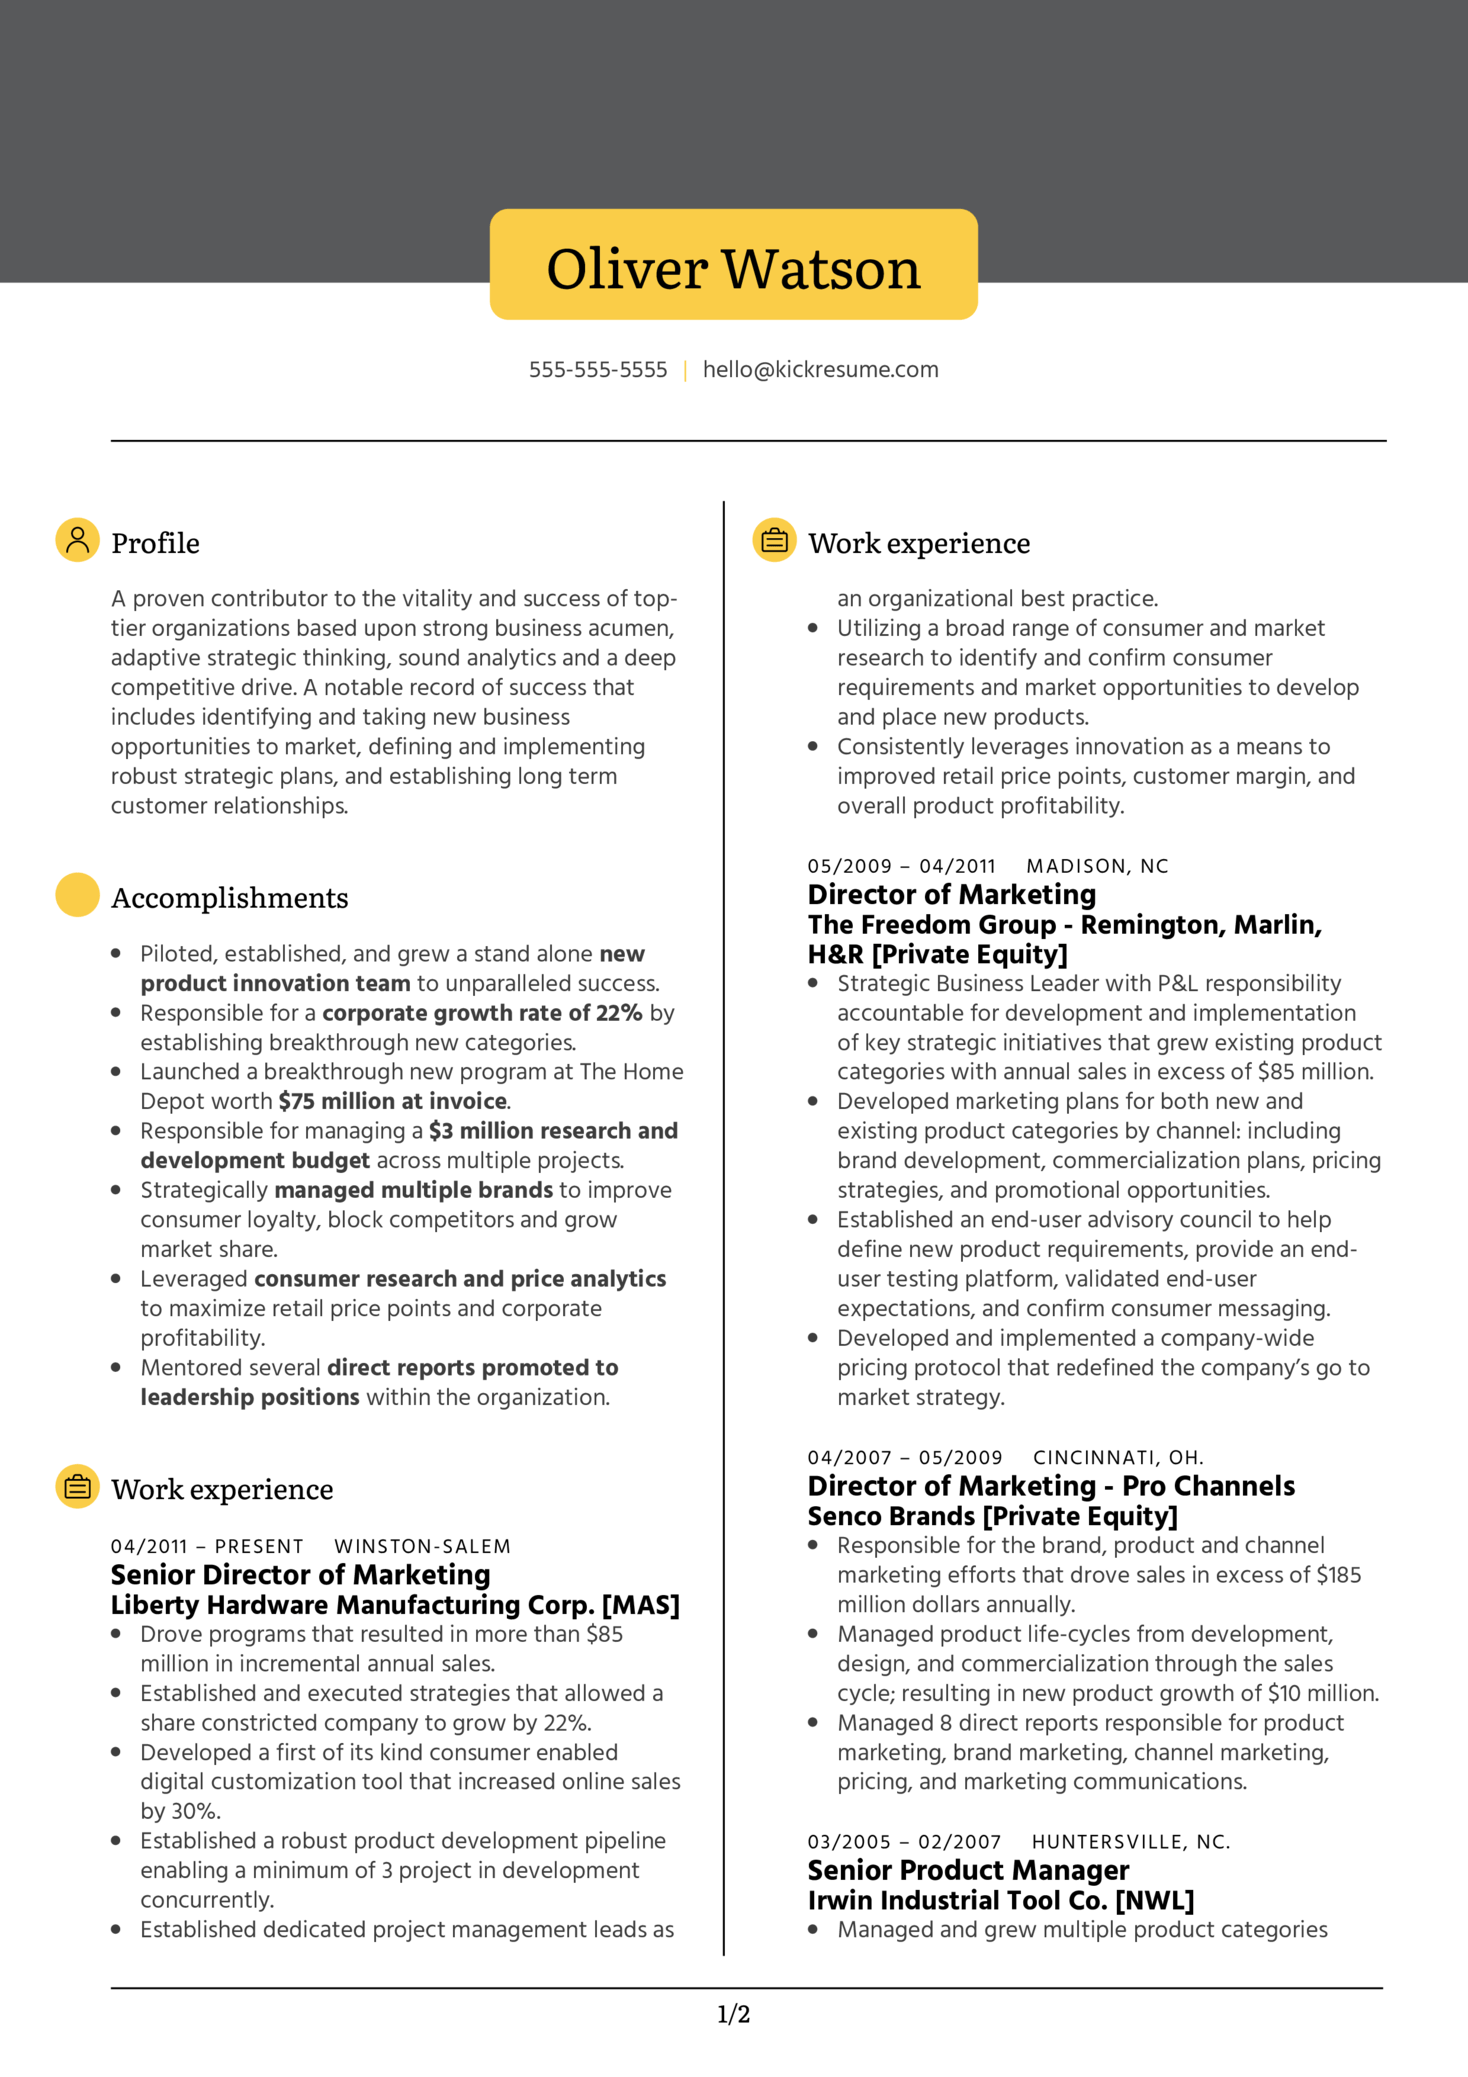 Vice President of Marketing Resume Example (Part 1)